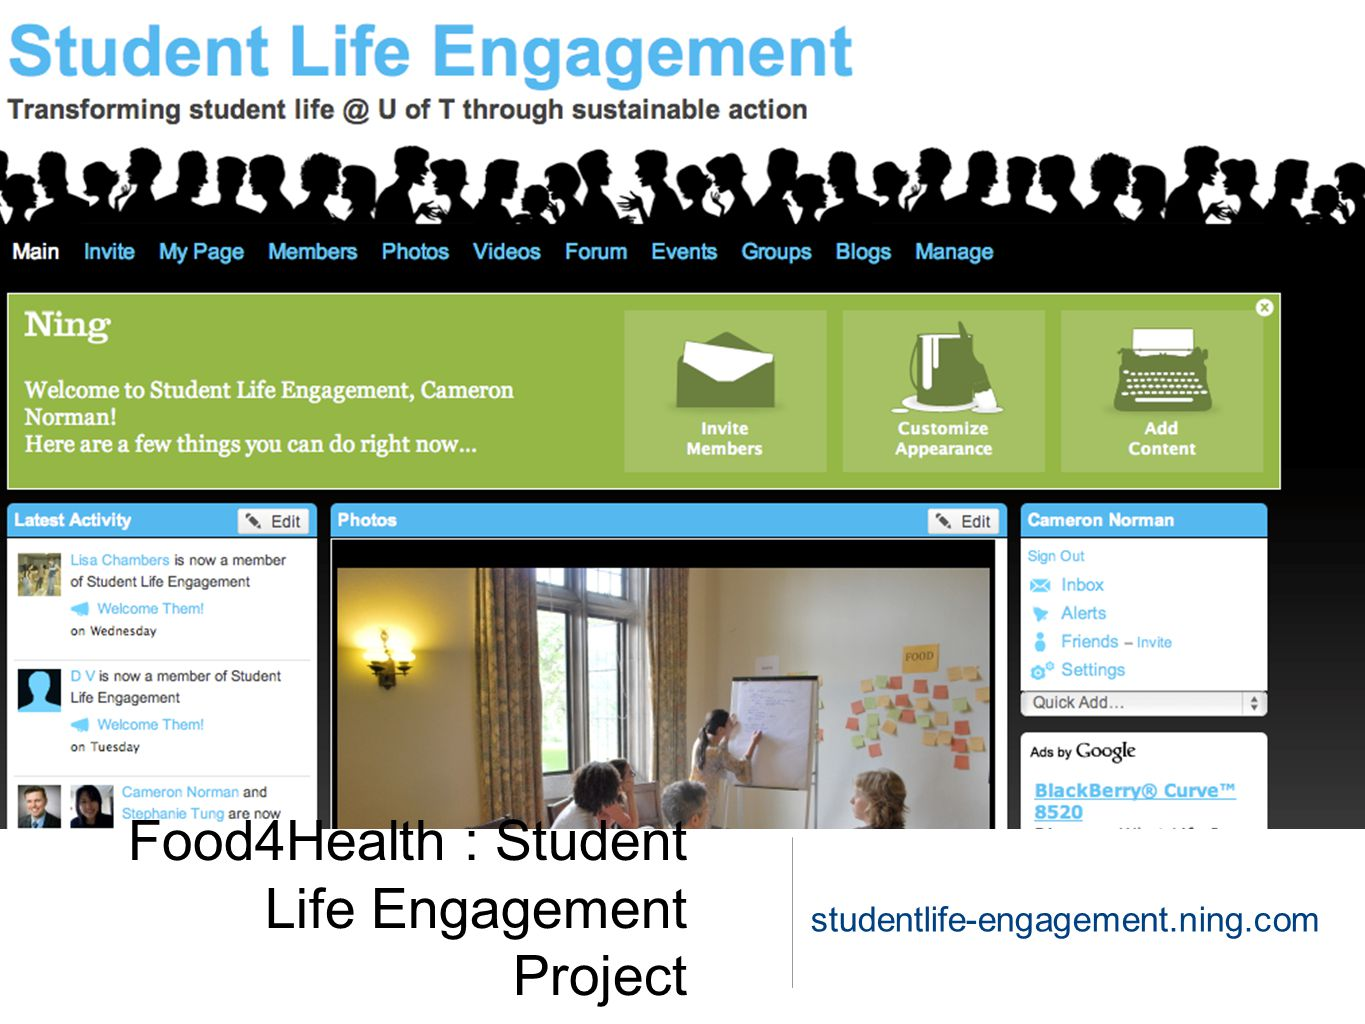 Food4Health : Student Life Engagement Project studentlife-engagement.ning.com